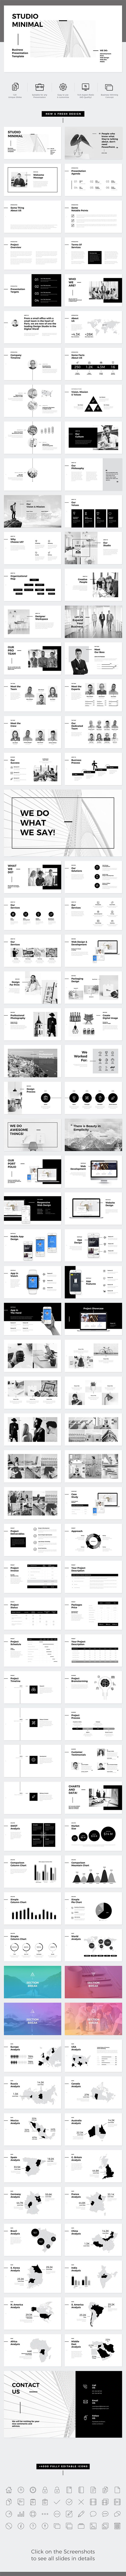 Professional Business Profile Template Studio Minimal Presentation Google Slides Template  Presentation .